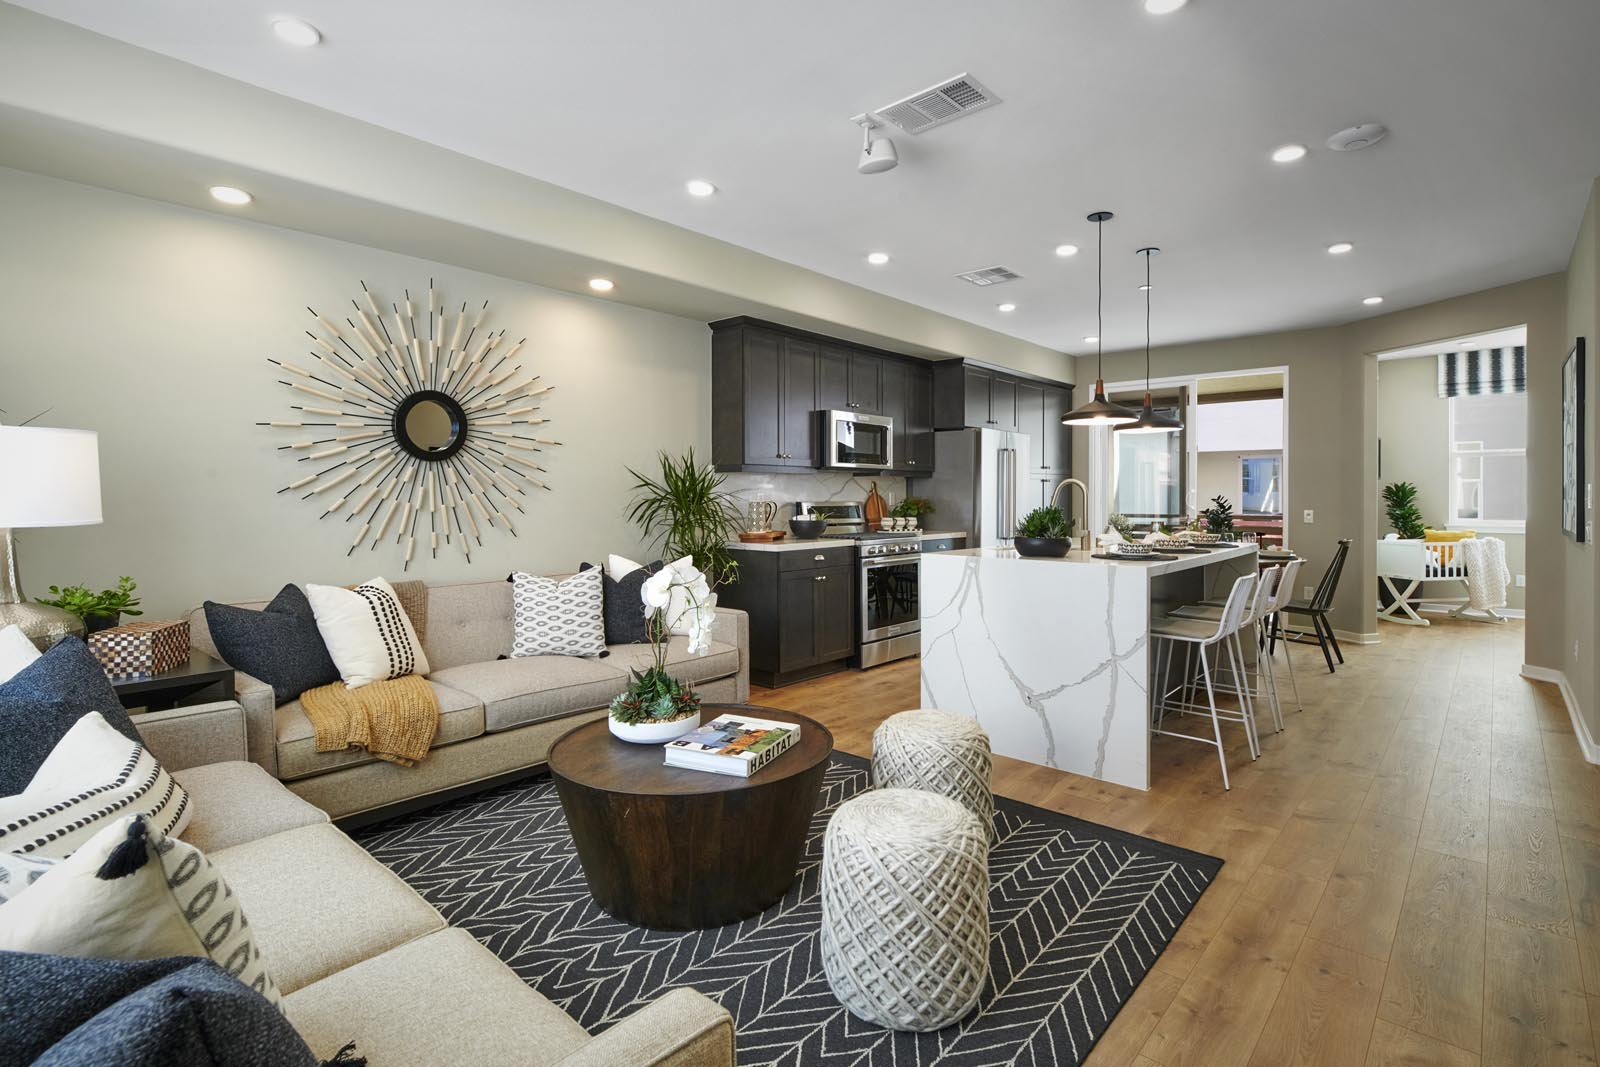 Great Room to Kitchen | Residence 2 | Enliven | New Homes in Rancho Cucamonga, CA | Van Daele Homes